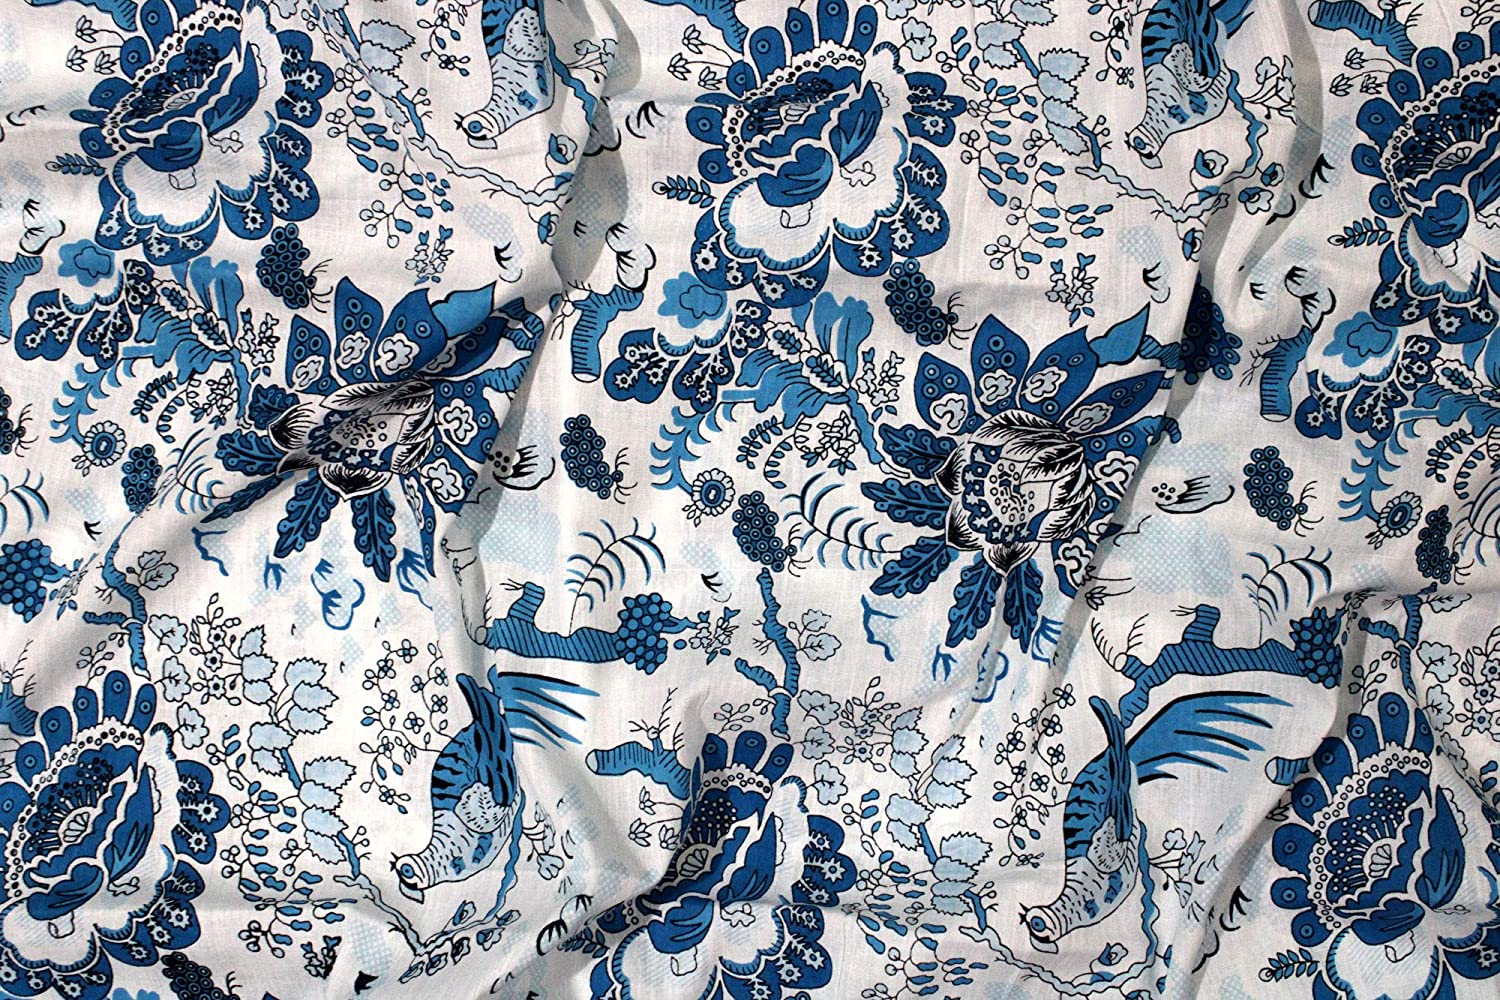 Trade Star Indian Printed Fabric Pattern 1, 3 Yard Ethnic 100/% Cotton Fabric for Dressmaking Boho Fabric for Home Furnishing,Floral Craft Fabric for Sewing,Hand Printed Fabric for Crafting